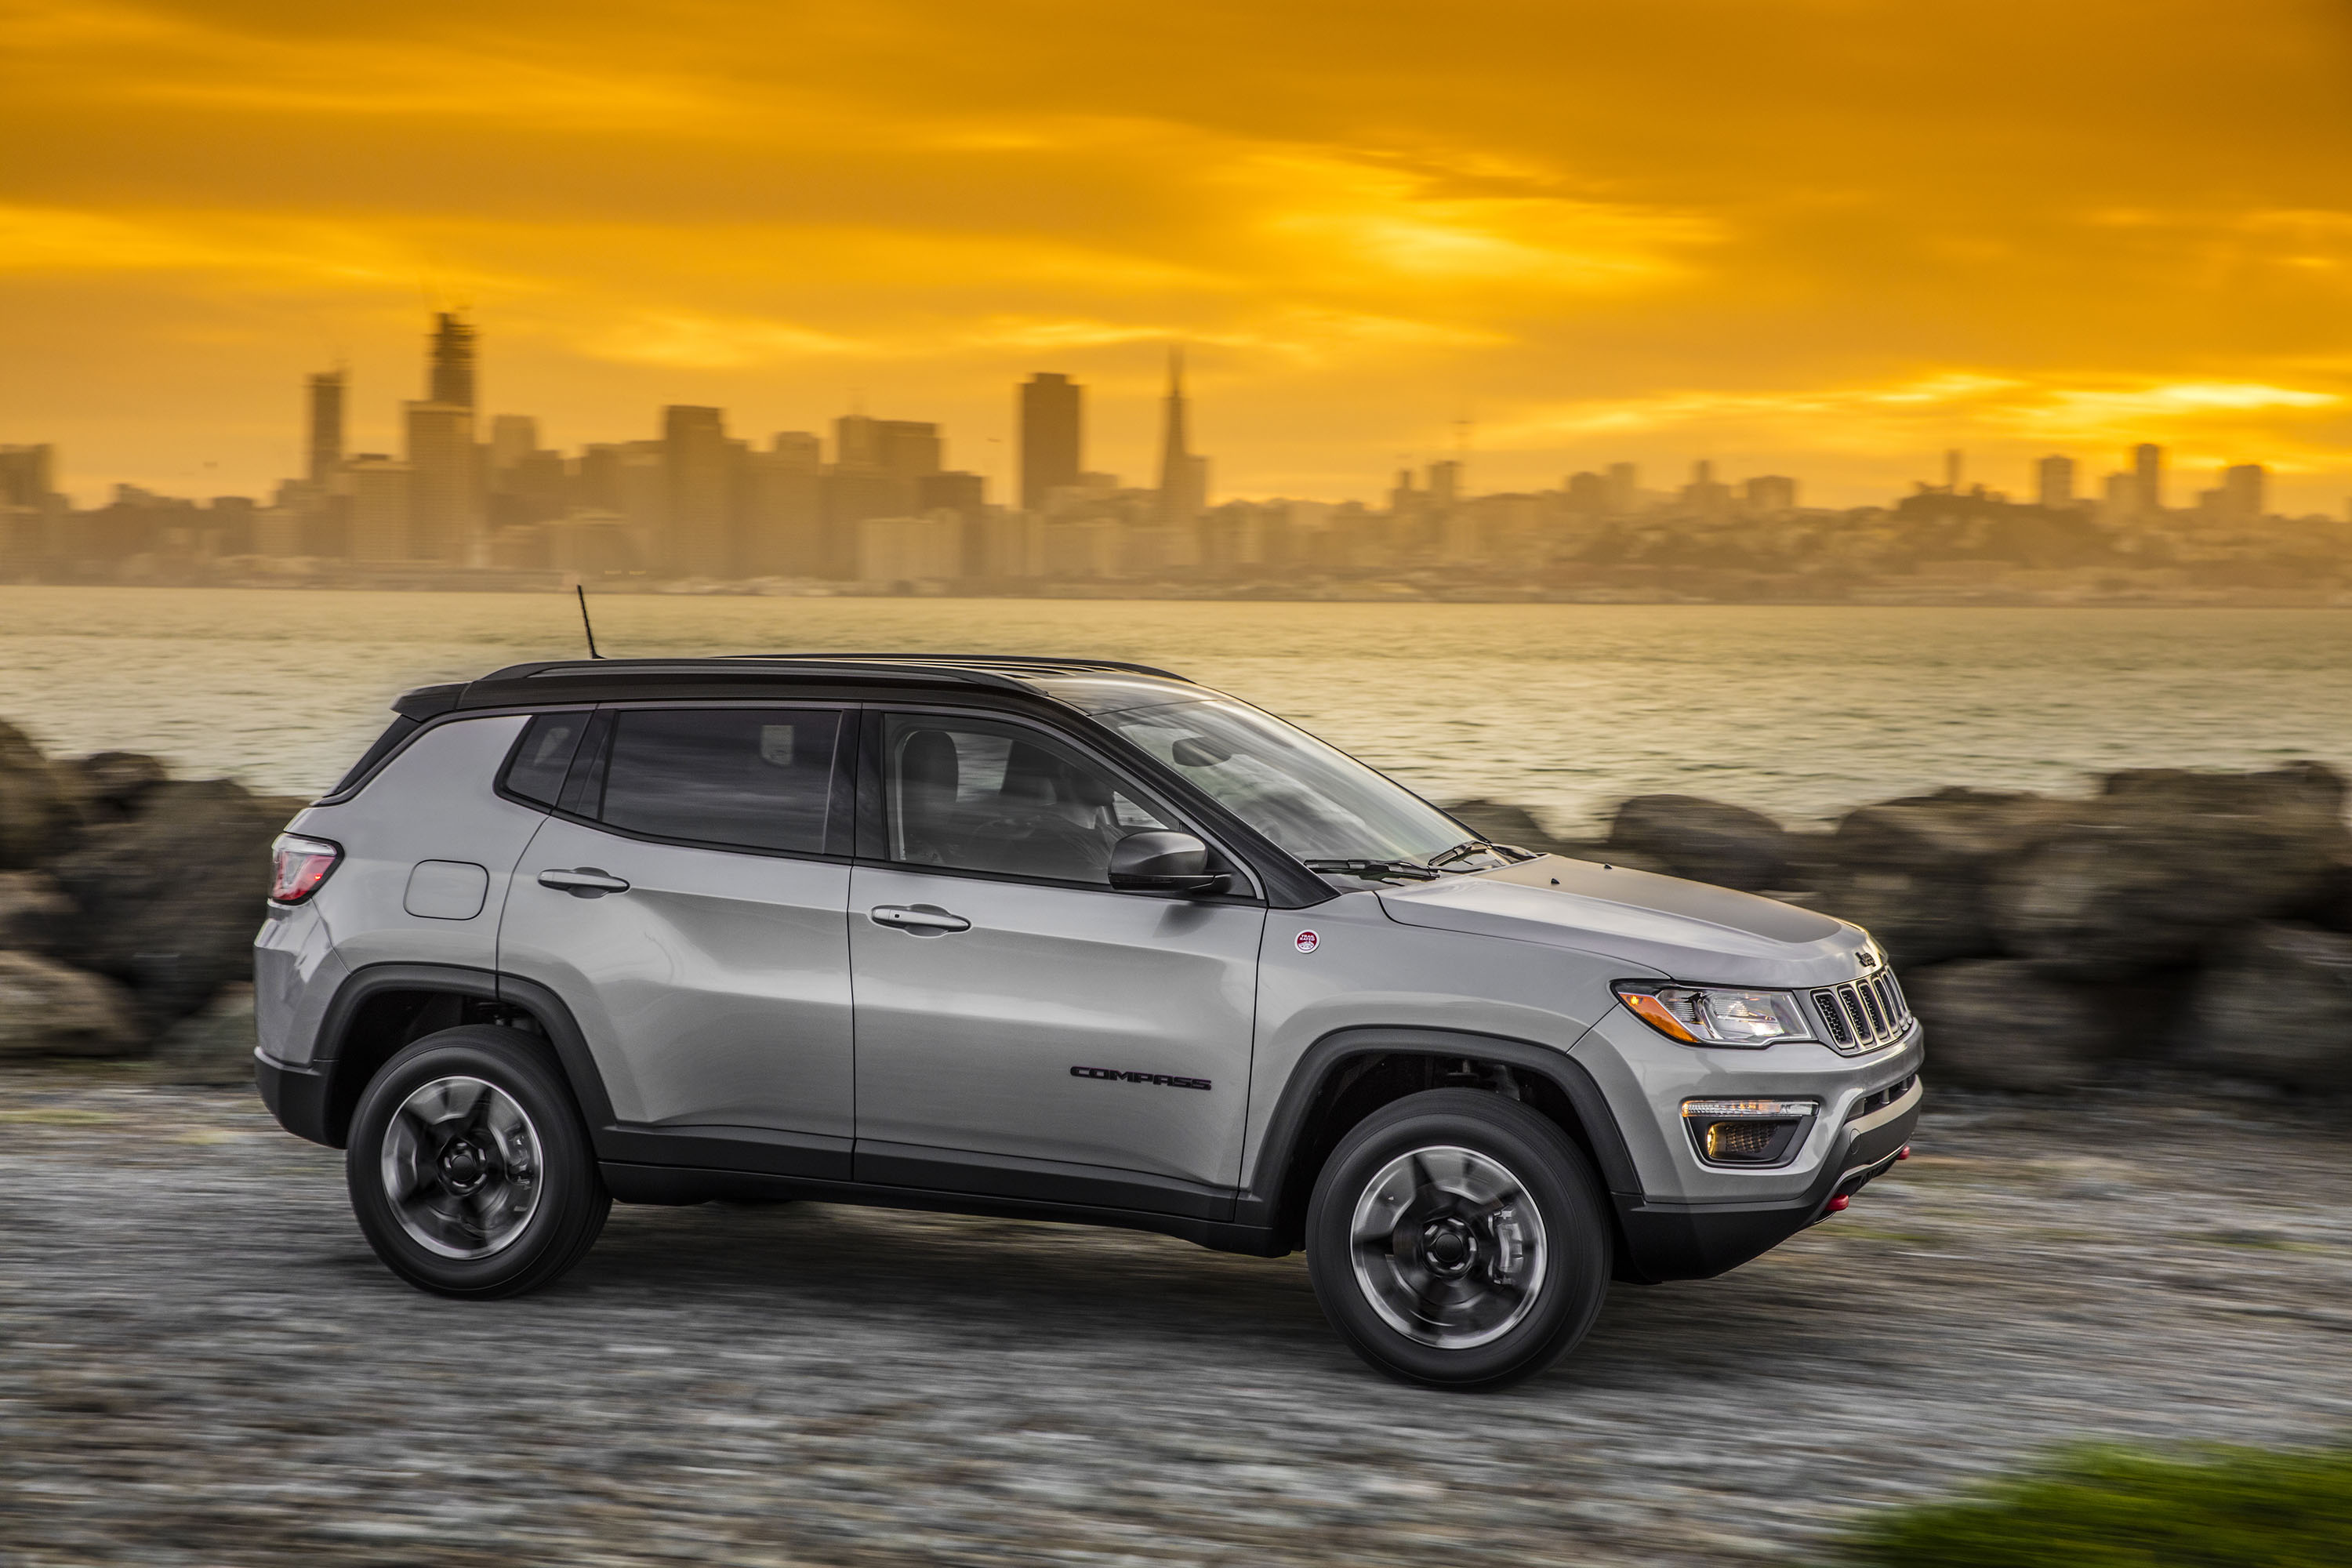 Las Vegas Used Cars >> Jeep Compass review, Takata admits guilt, Alpine A110: What's New @ The Car Connection